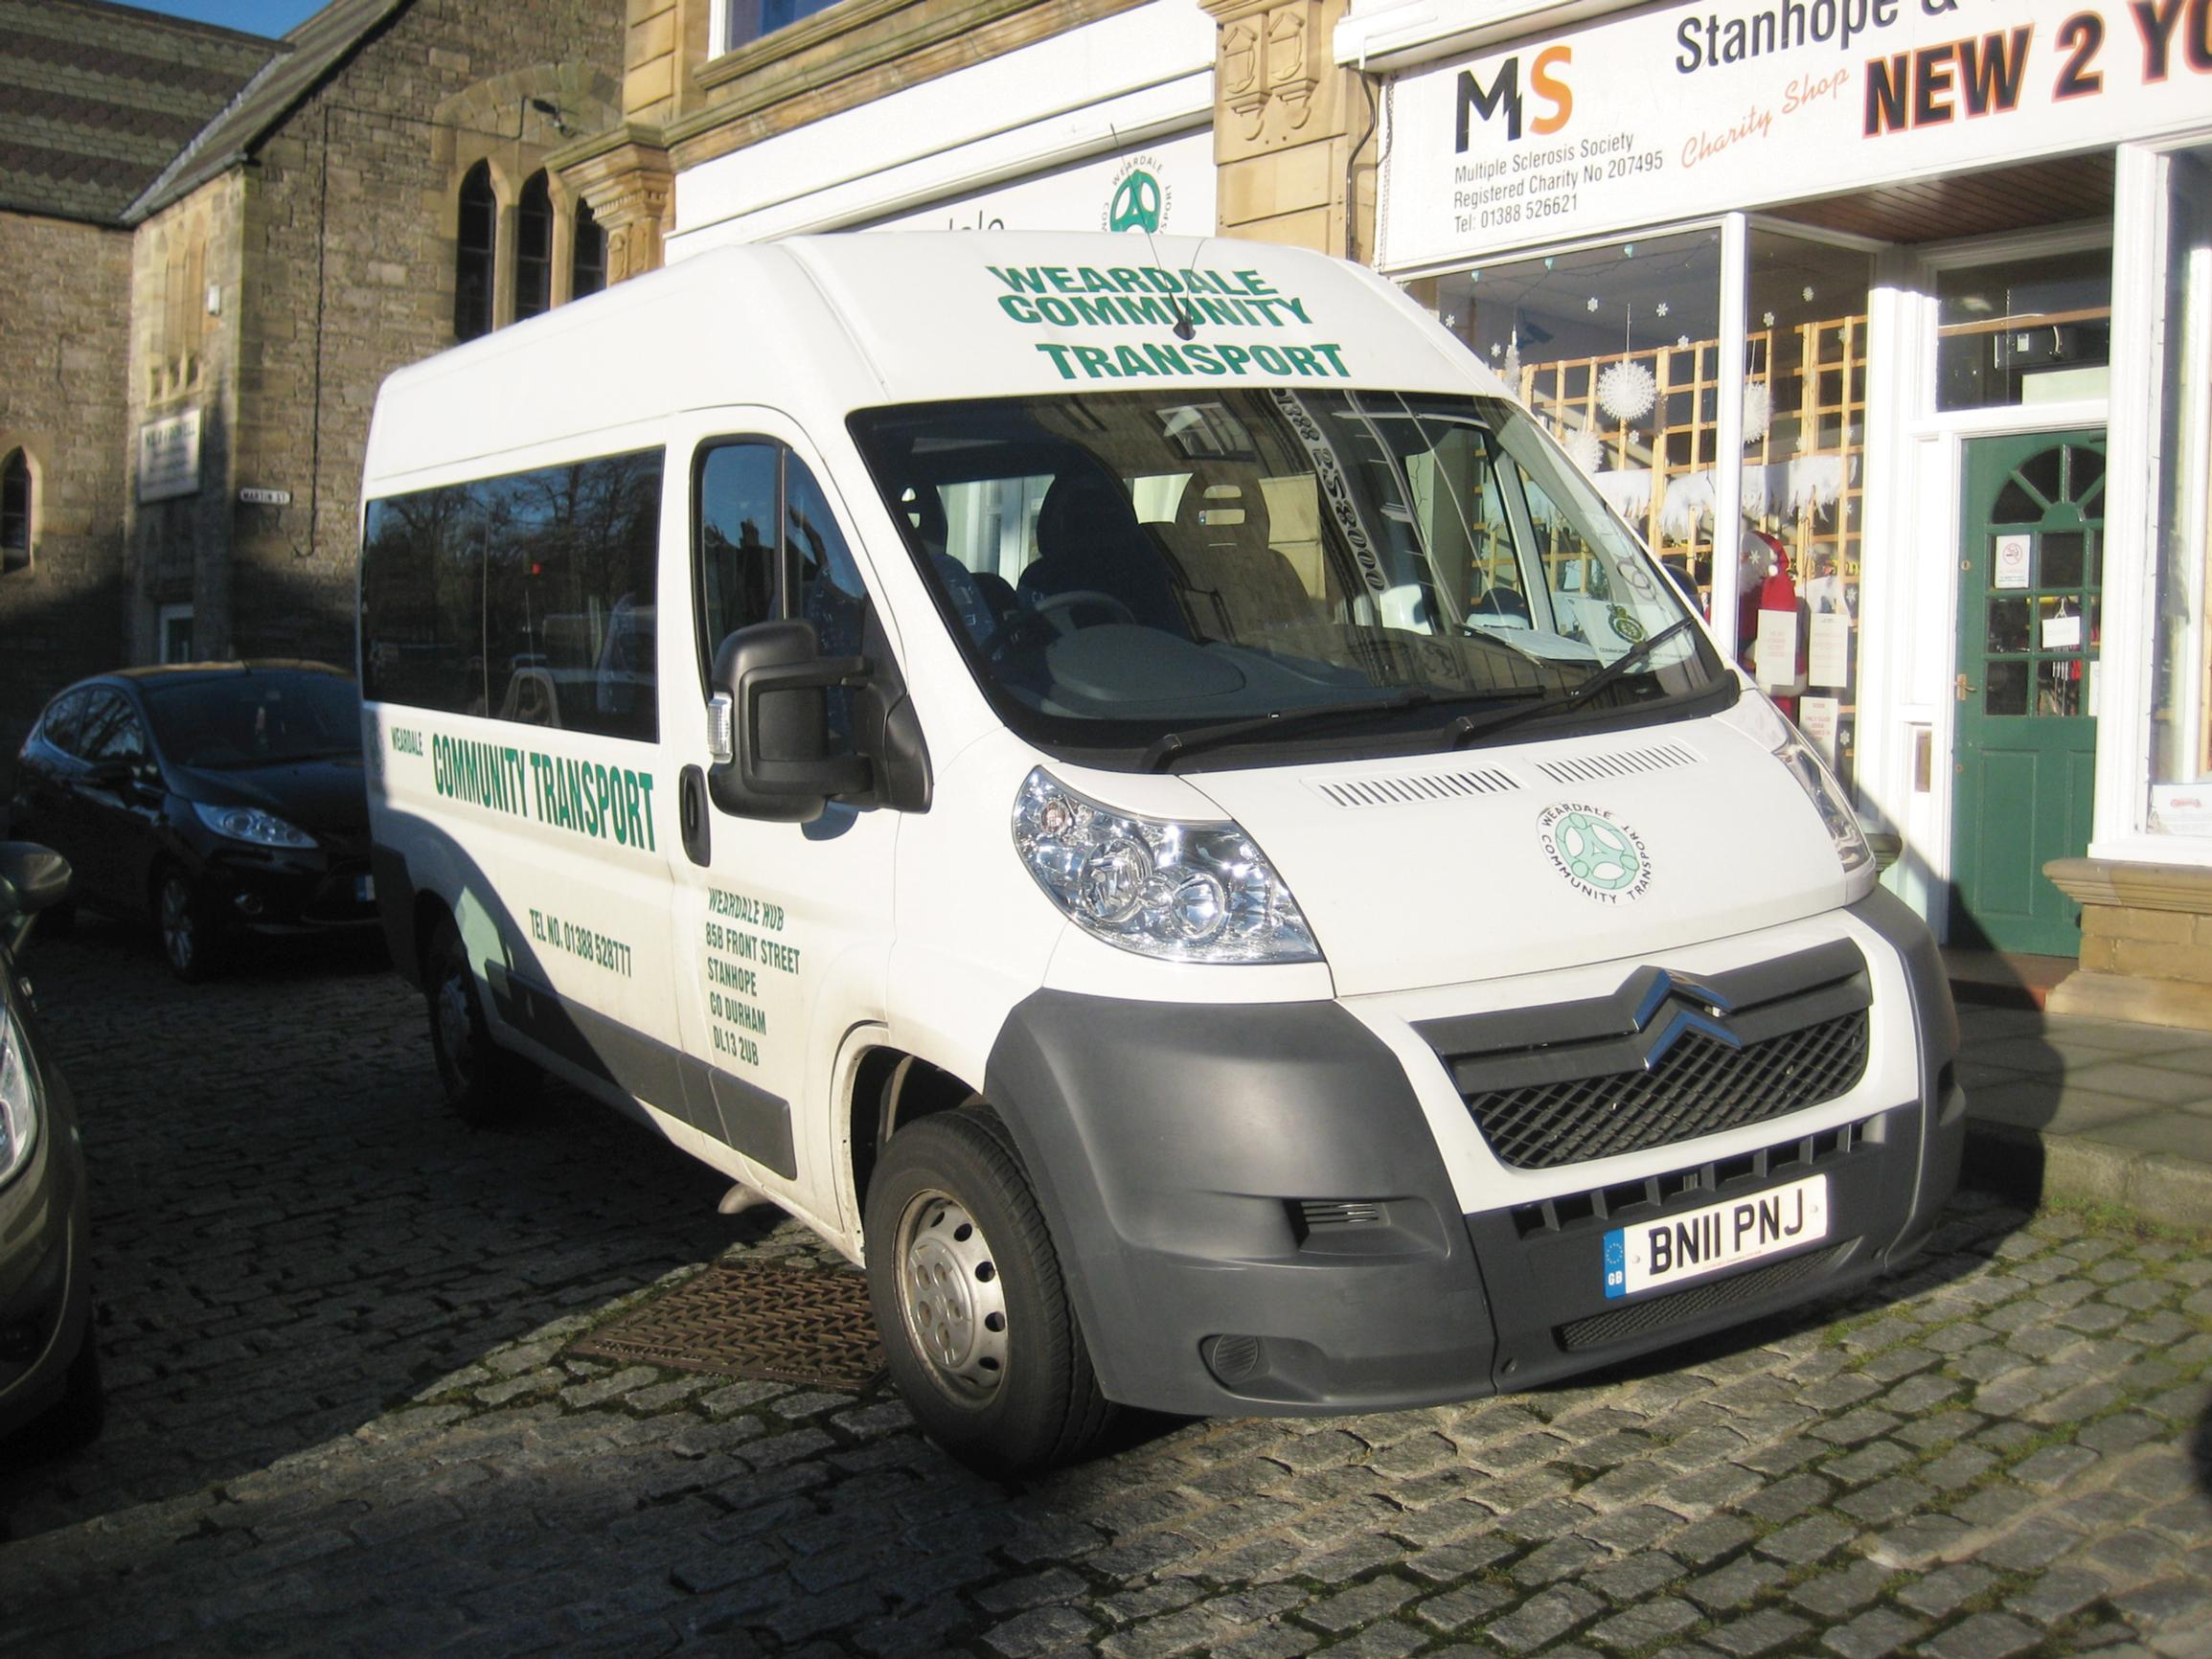 No need to cancel community transport contracts, says DfT